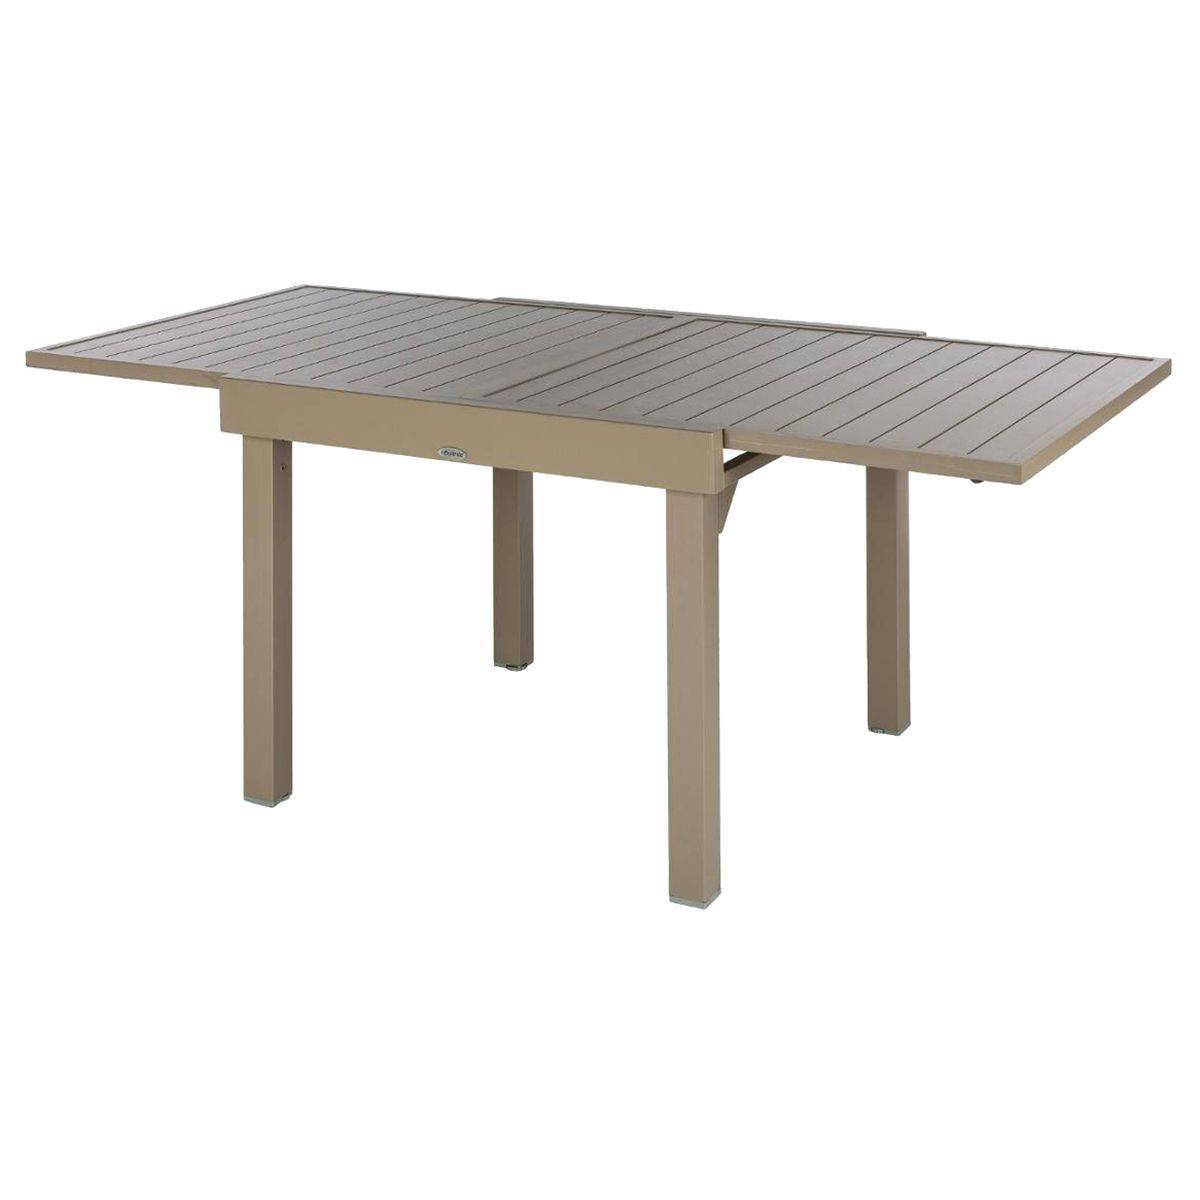 Table de jardin extensible piazza taupe hesp ride 8 places for Table extensible 4 a 8 personnes